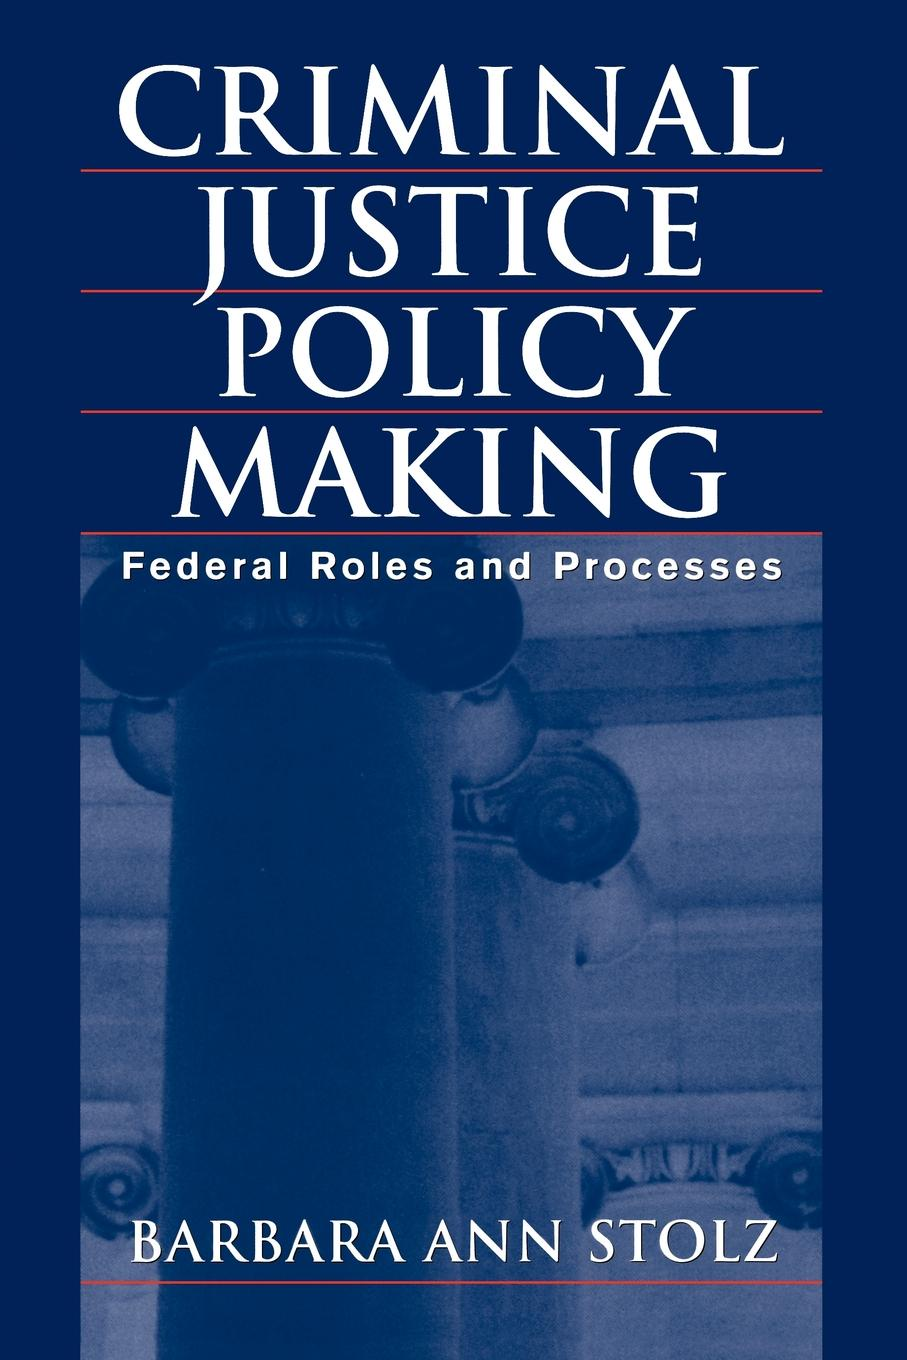 лучшая цена Barbara Ann Stolz Criminal Justice Policy Making. Federal Roles and Processes